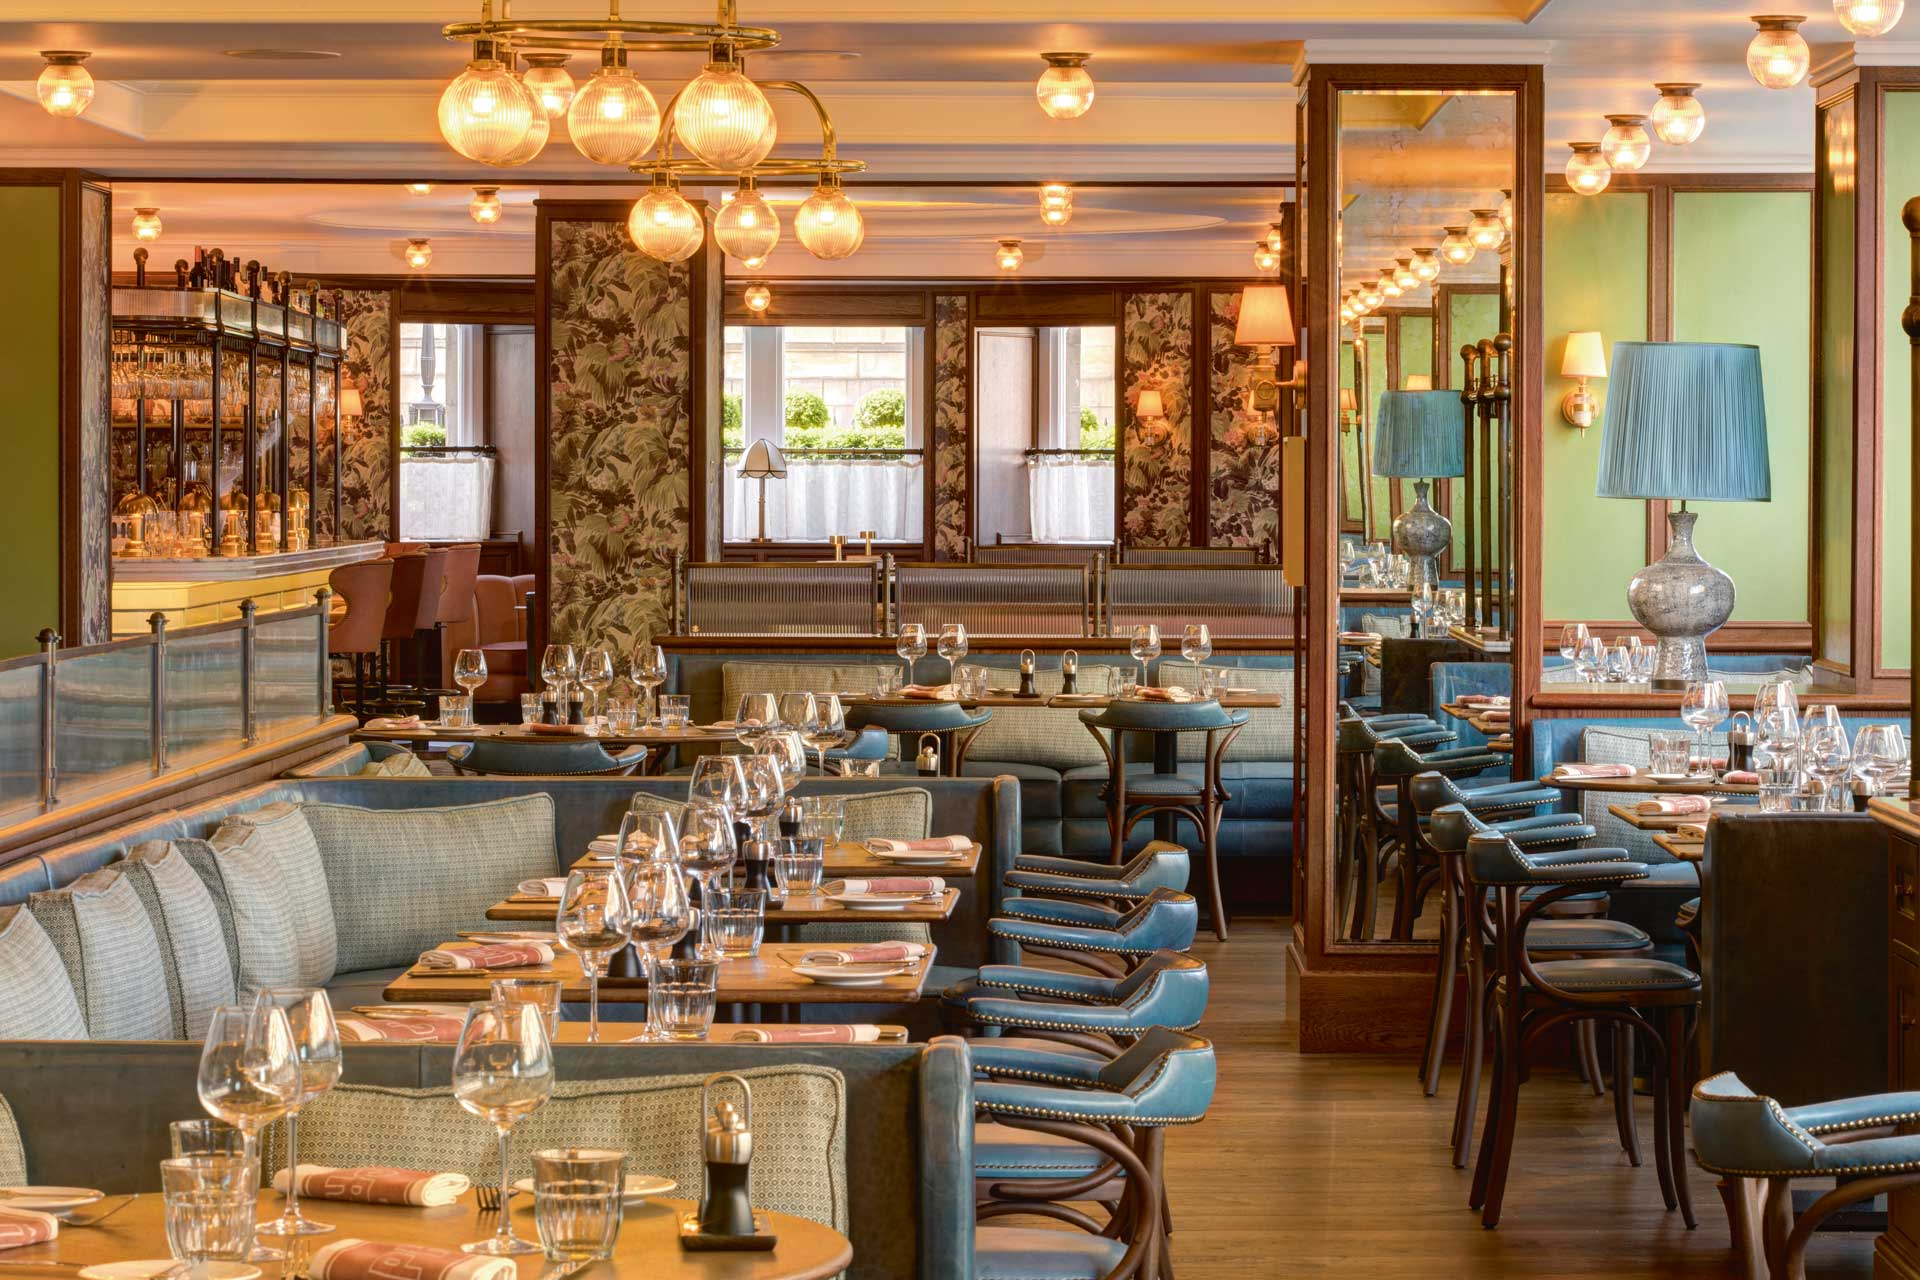 Martin Brudnizki Design Studio and Olga Polizzi worked together on Brasserie Prince's interiors